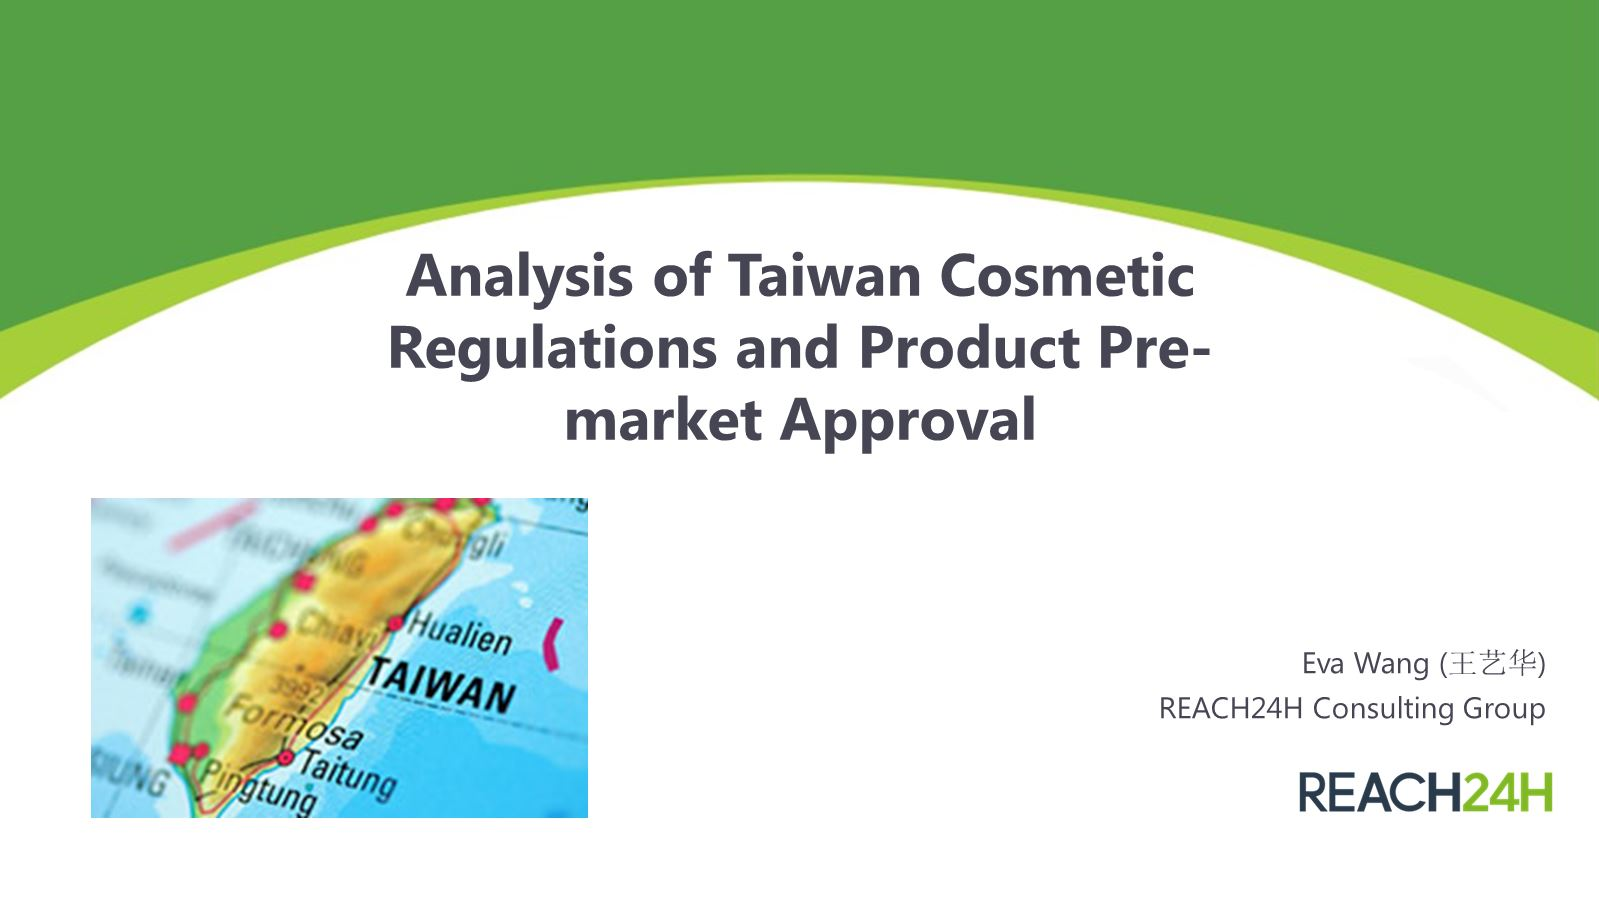 [Anniversary Series 2] Analysis of Taiwan Cosmetic Regulations and Product Pre-market Approval